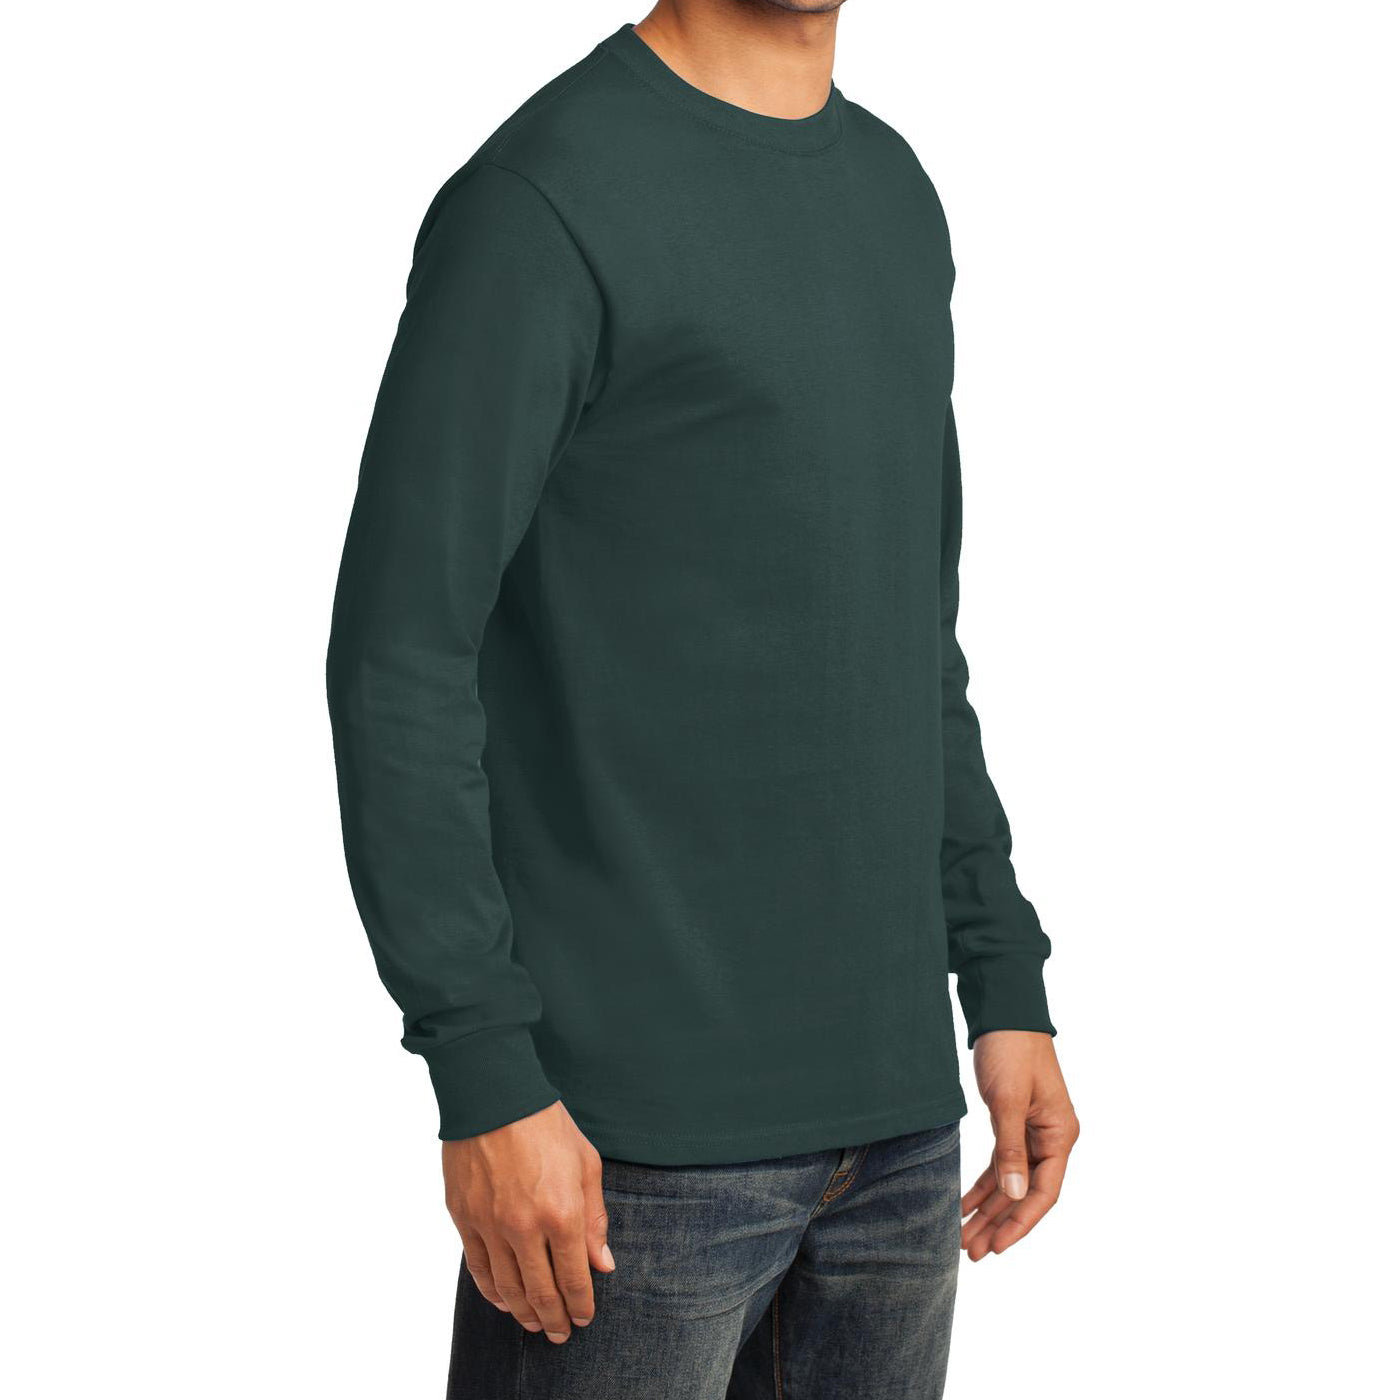 Men's Long Sleeve Essential Tee - Dark Green - Side